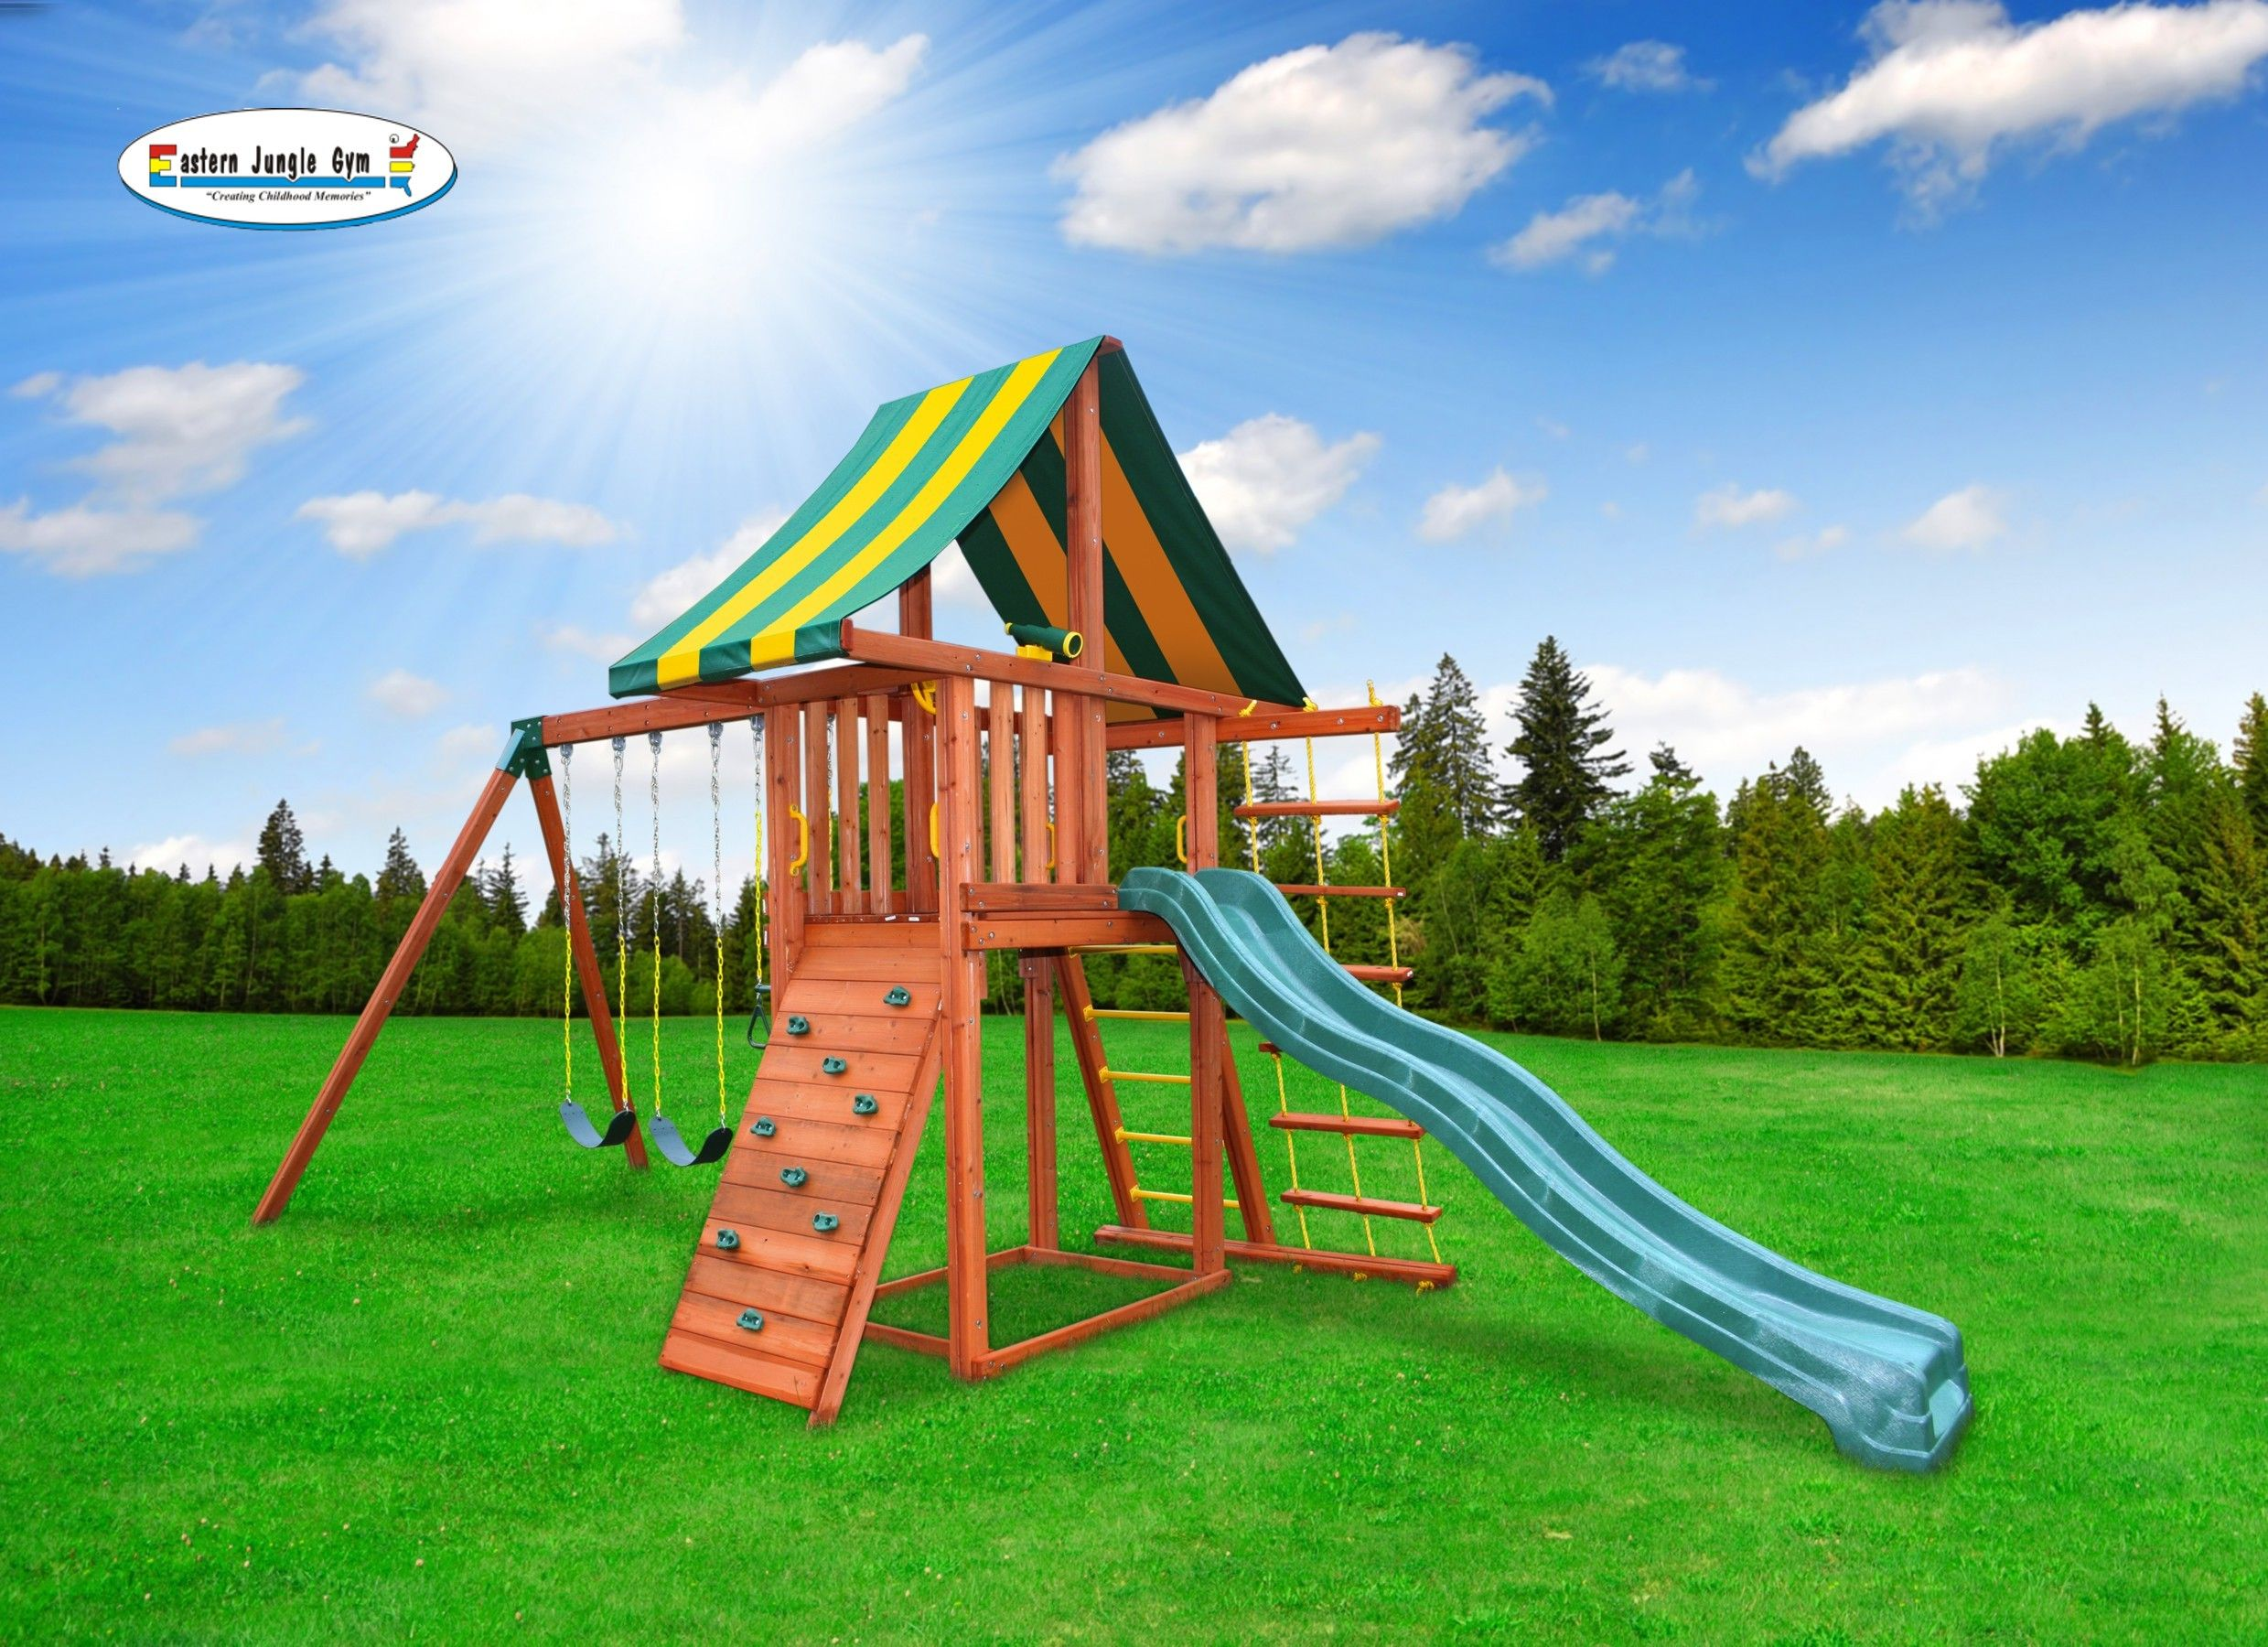 play stupendous playground backyards full structure swing home kids set that has in things this backyard appealing for a inside uncategorized it ultimate with sets impressive of size lot depot inspiring on